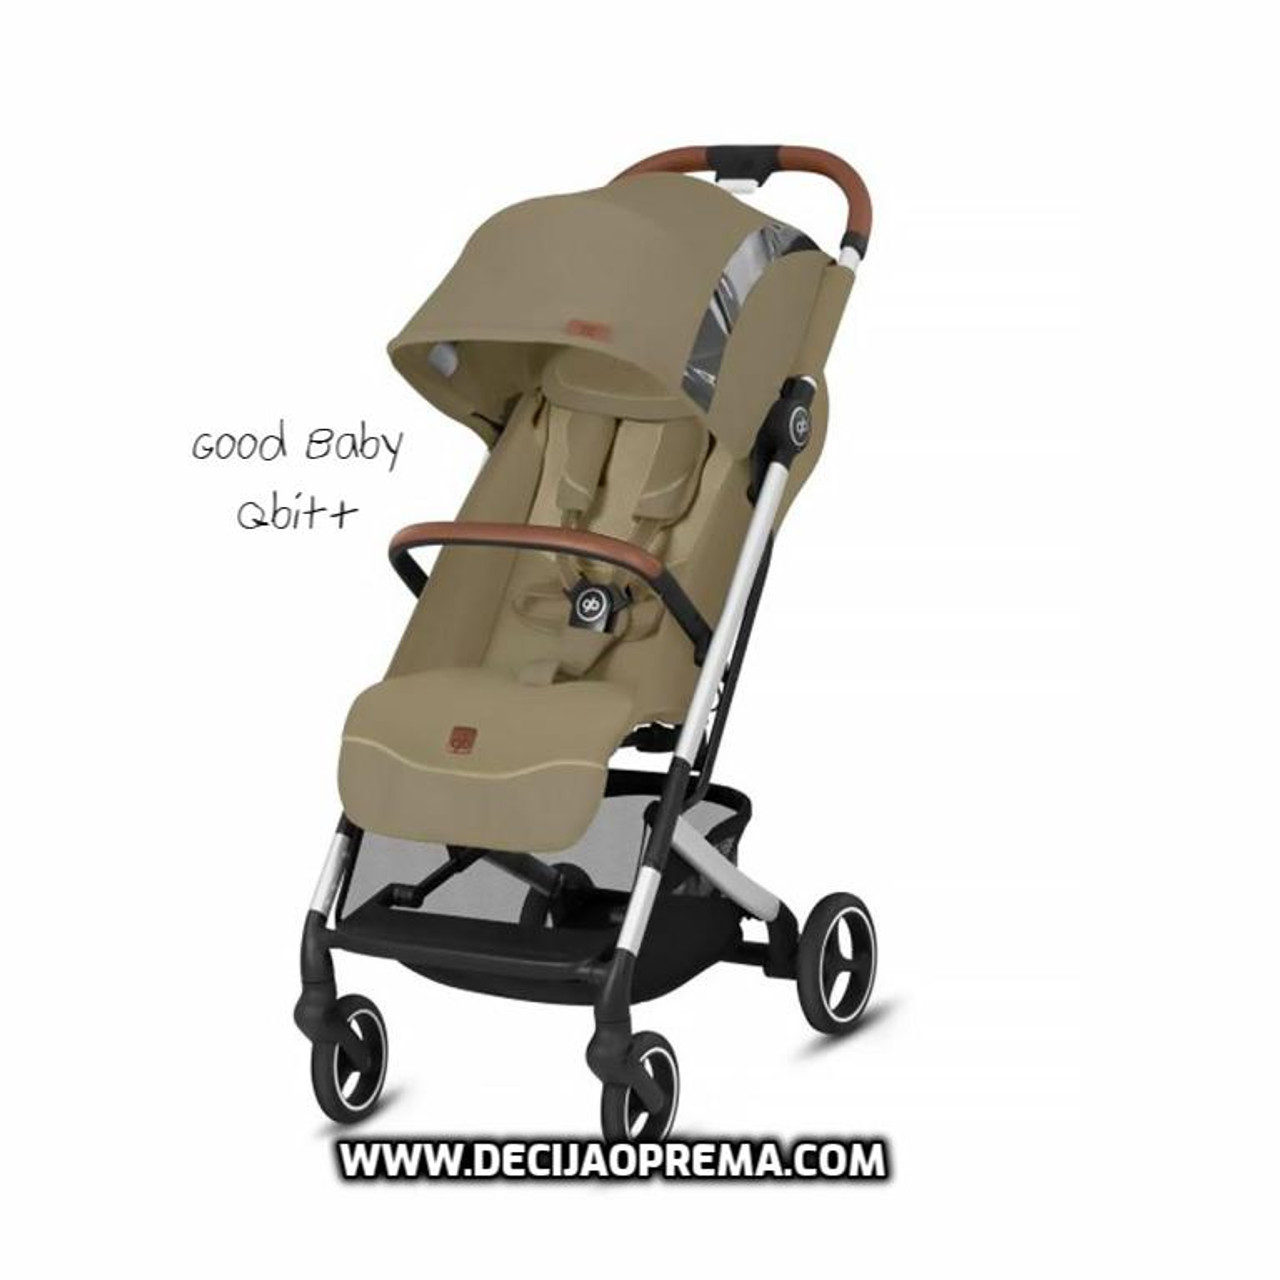 Kolica za bebe GB Qbit+ All city Fashion vanila beige